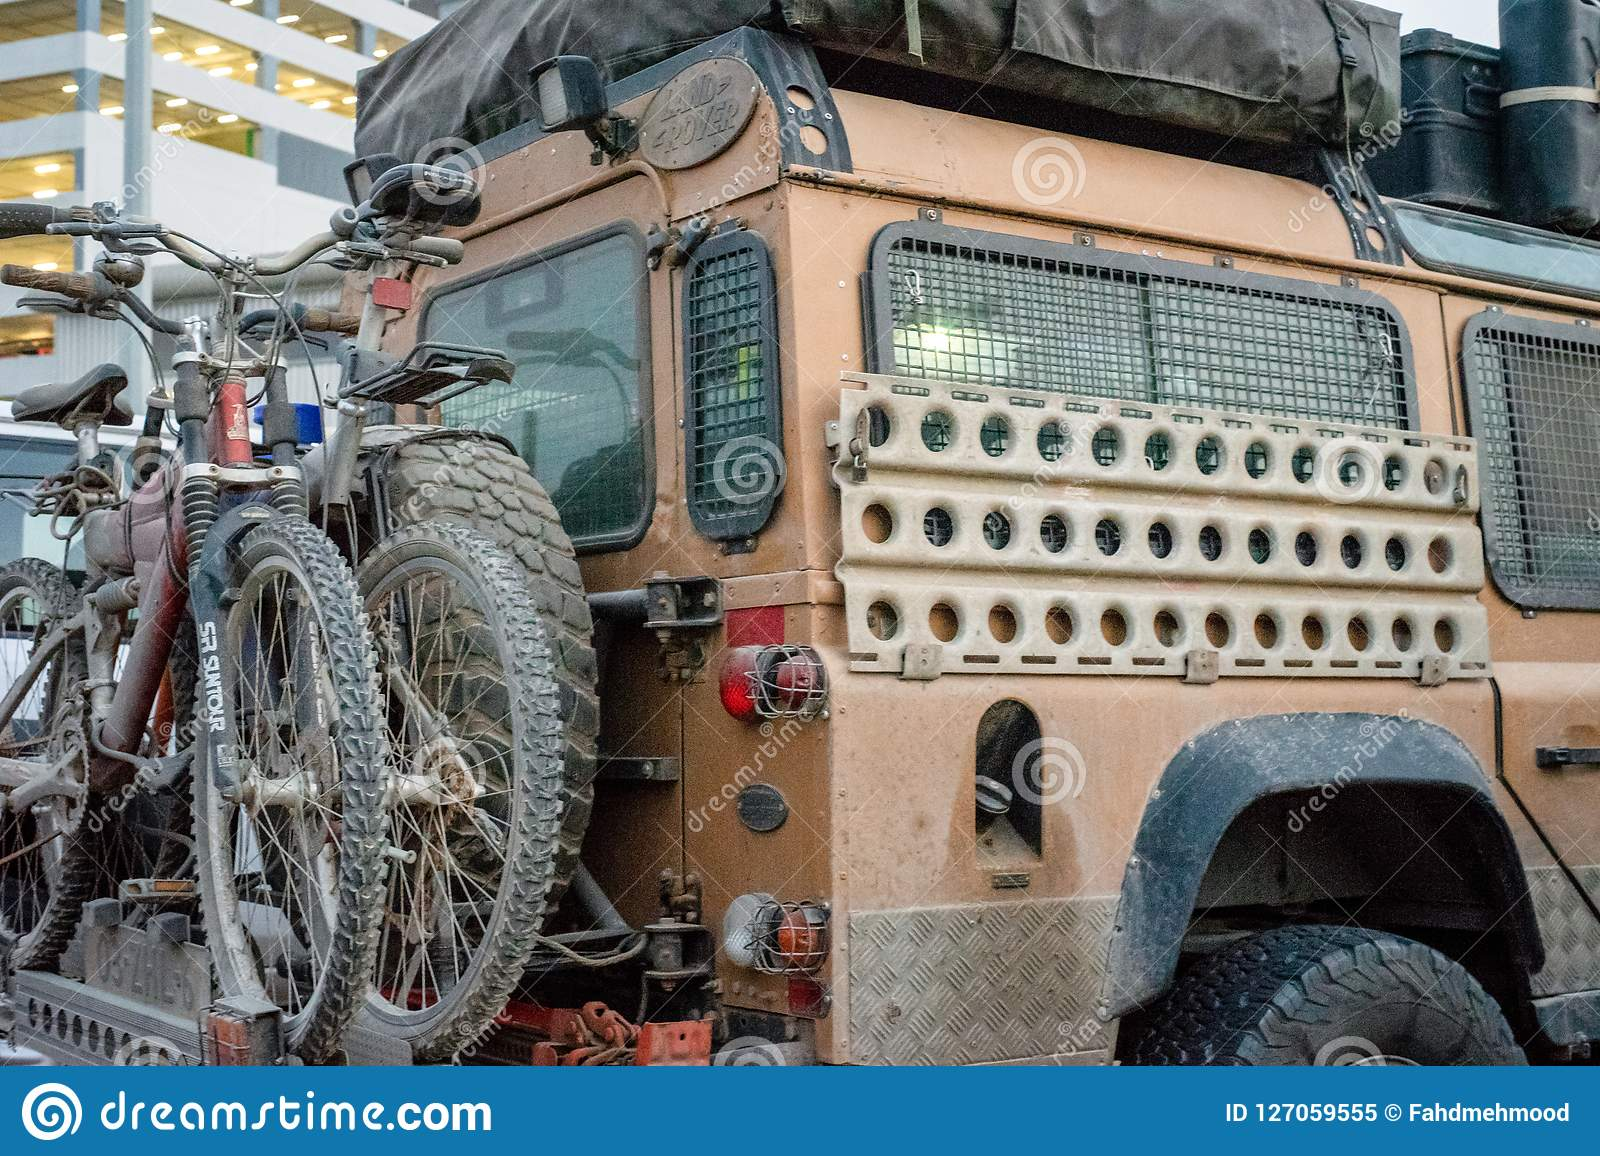 Expedetion Land rover, full of mud, packed with cycles